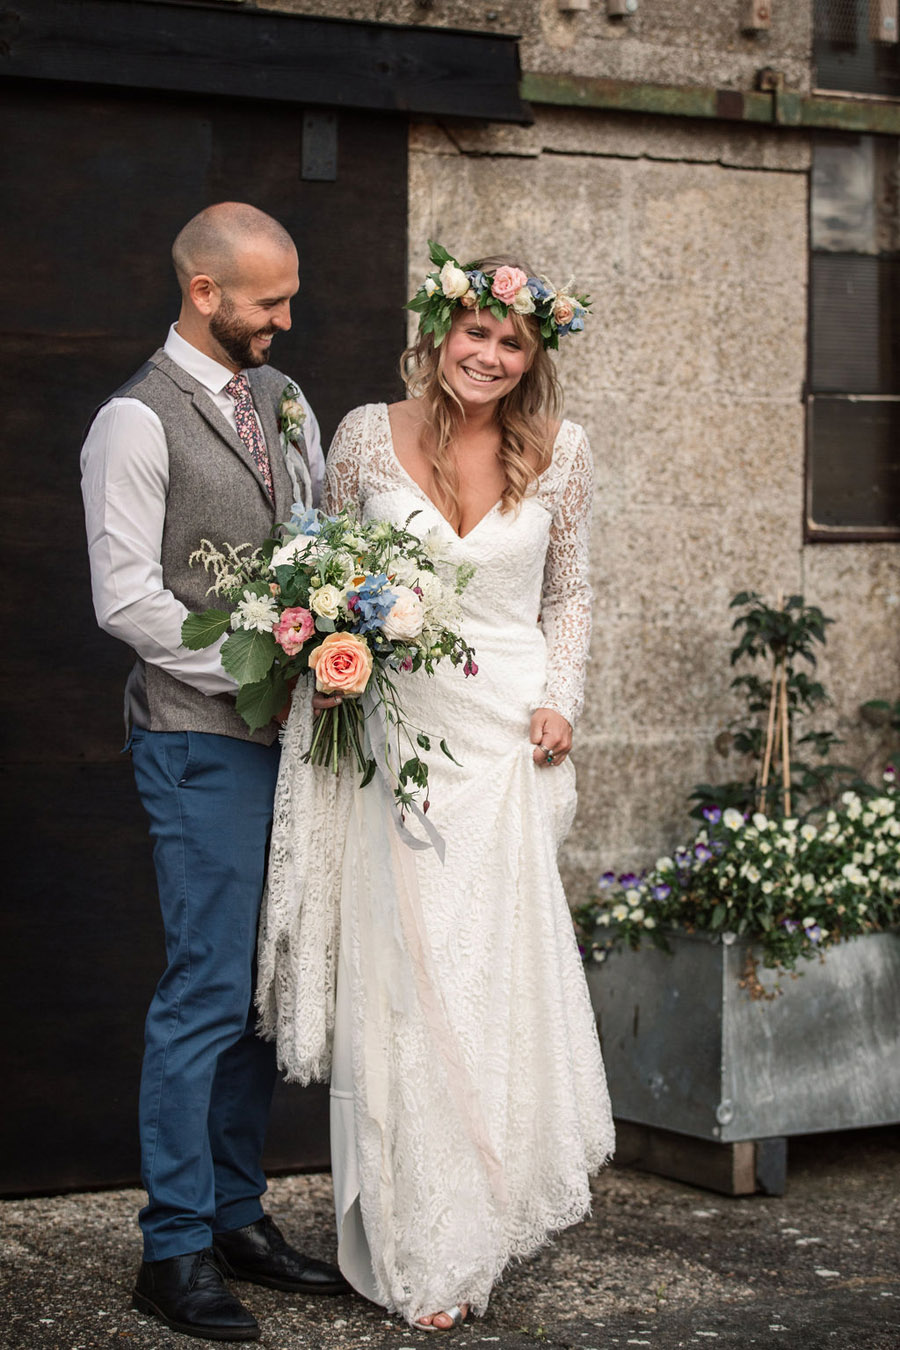 Evening sunset wedding inspiration at Willow Grange Farm, with Becky Harley Photography (48)